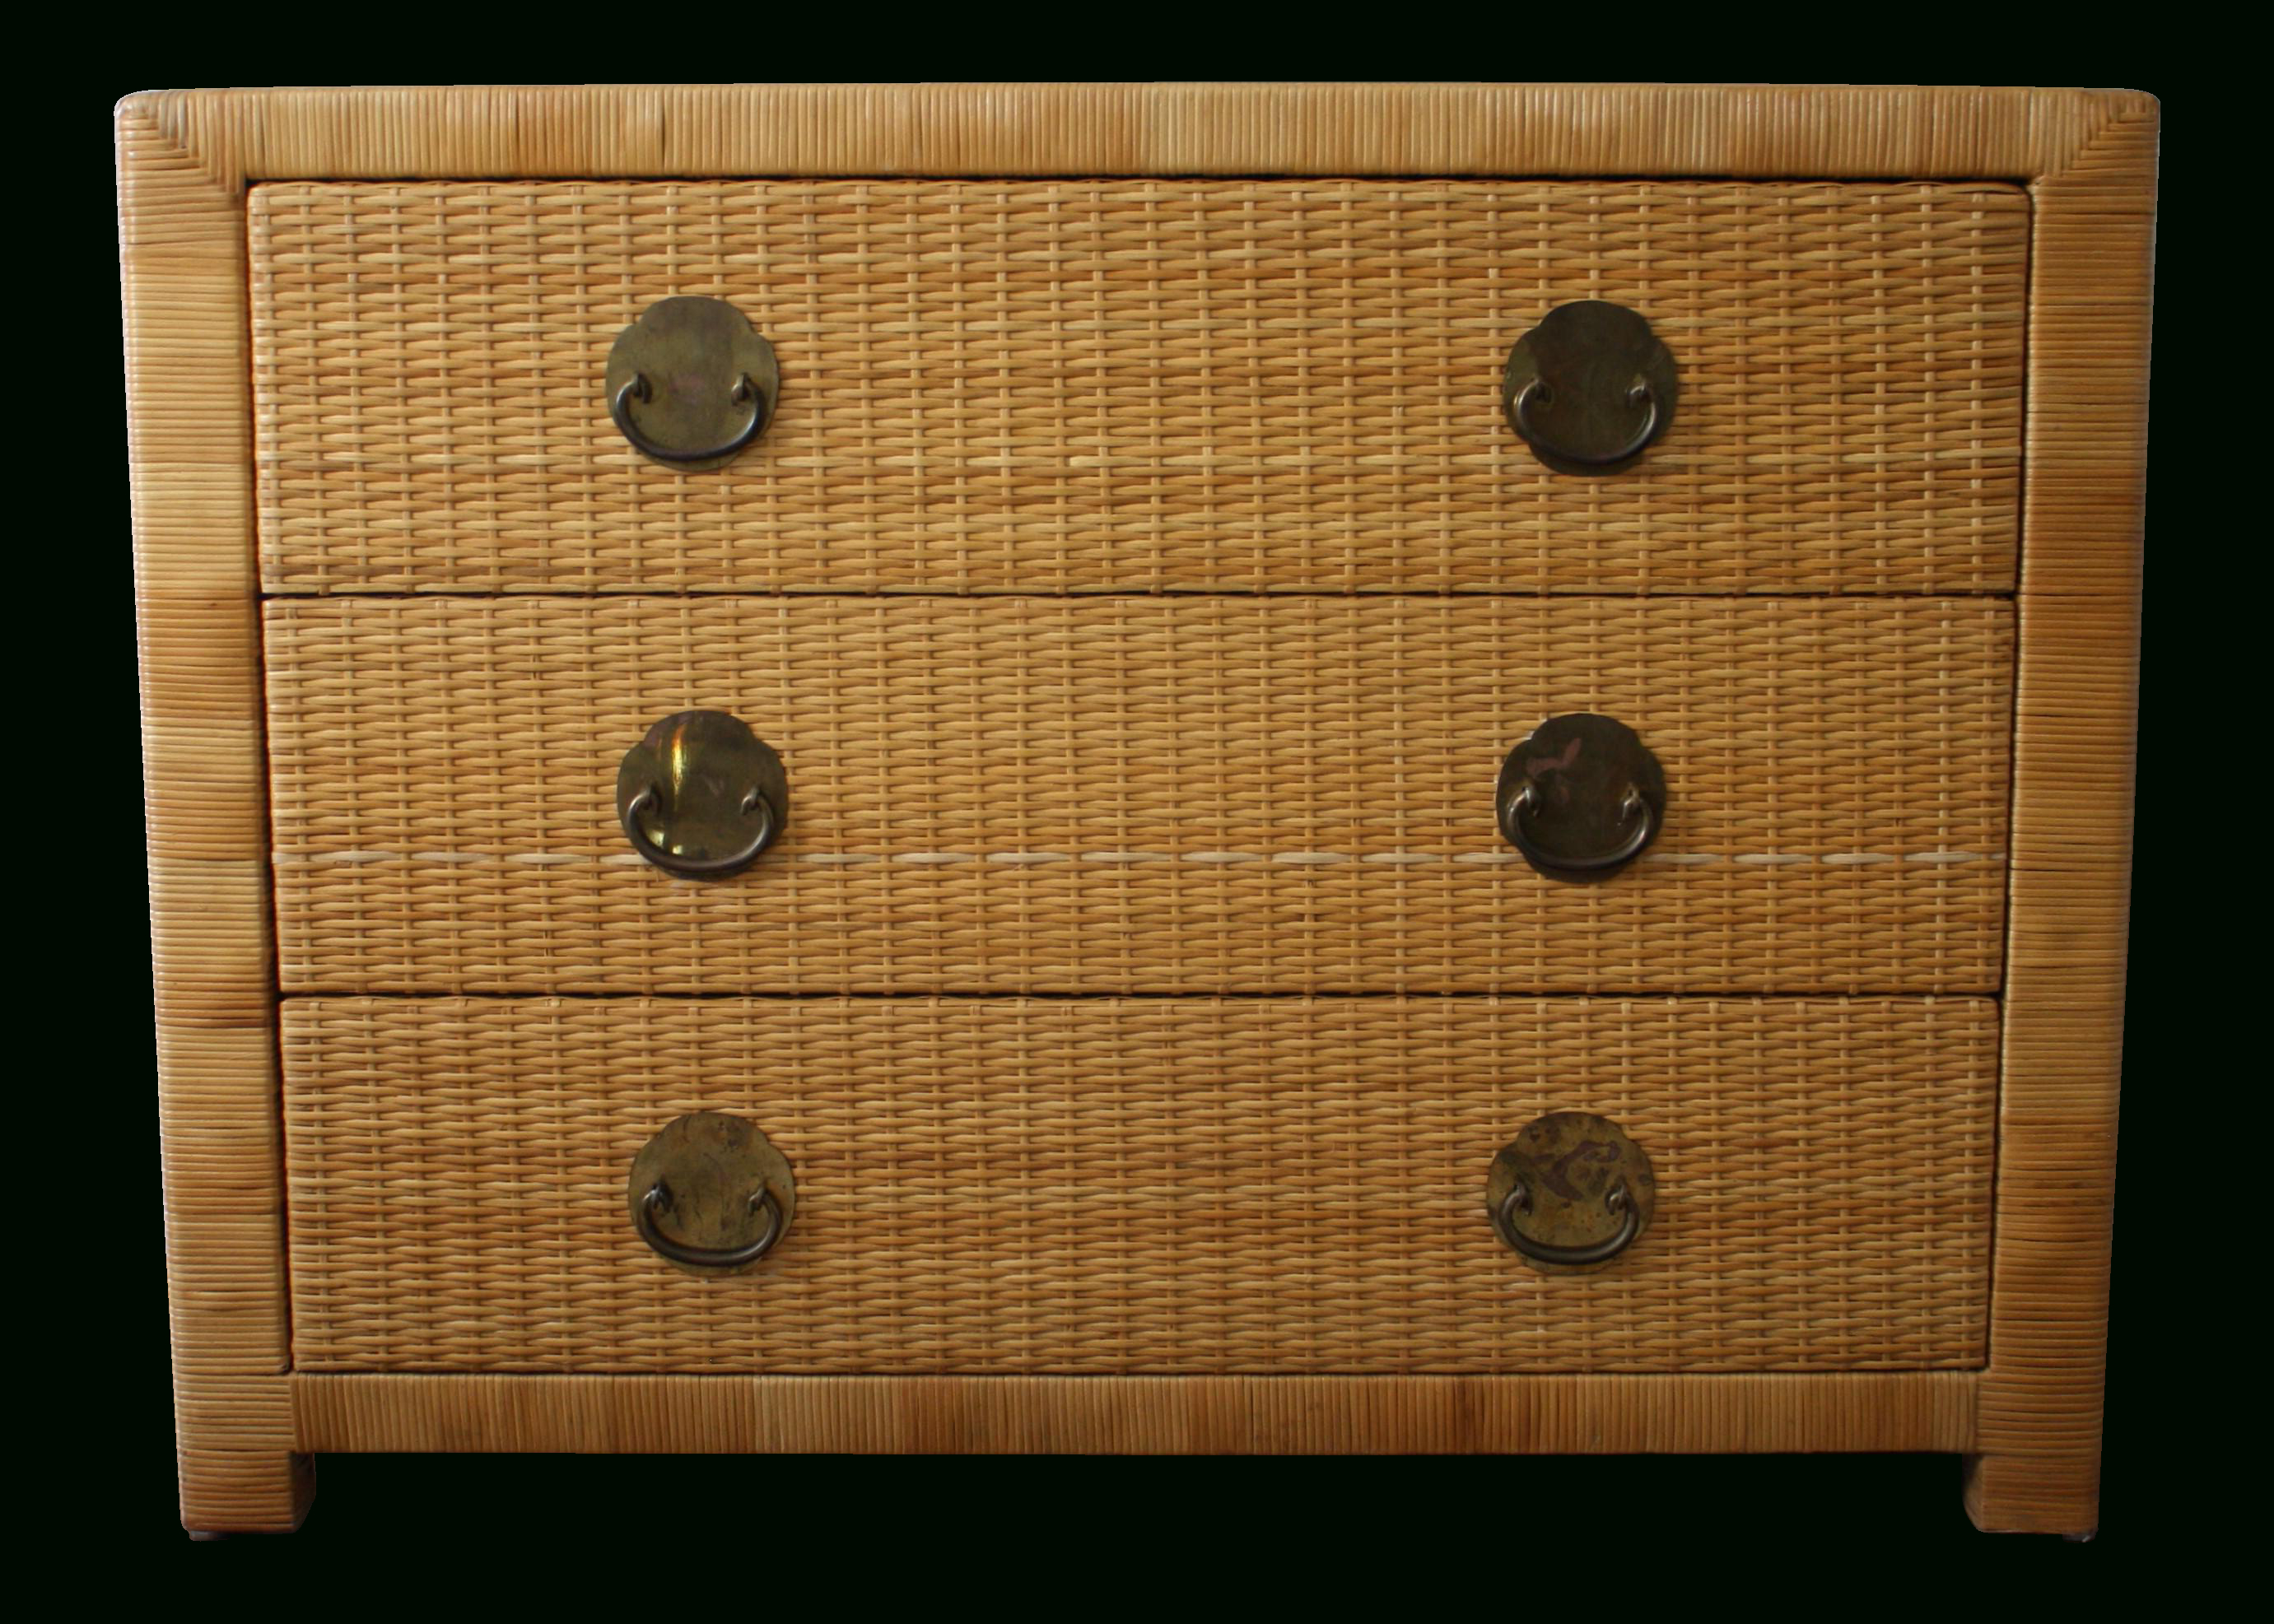 This Vintage Natural Wicker And Rattan Chest Of Drawers Comes With 3 Pertaining To Natural Cane Media Console Tables (View 20 of 20)